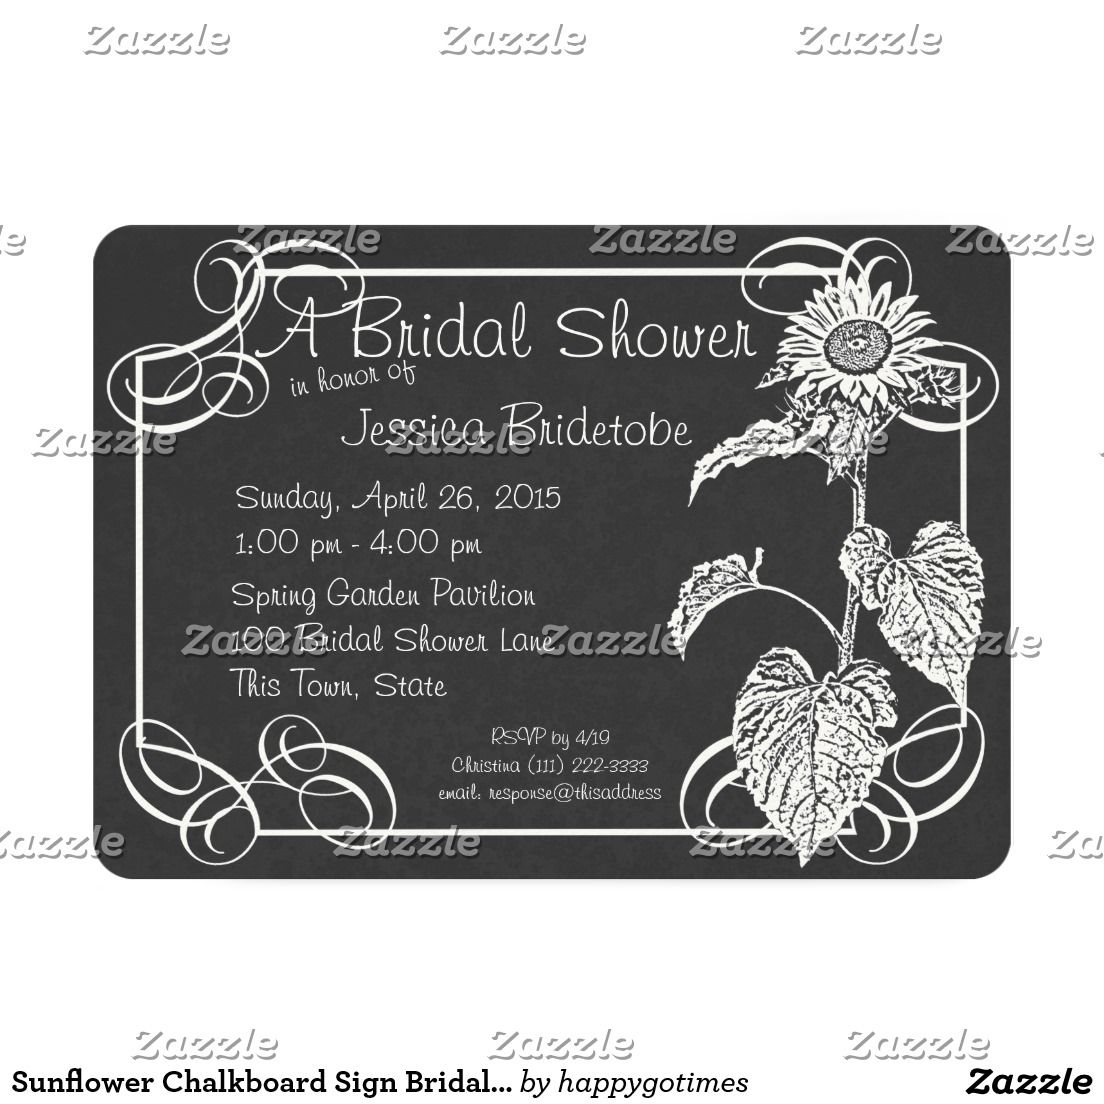 Sunflower Chalkboard Sign Bridal Shower Card Elegant Chalkboard